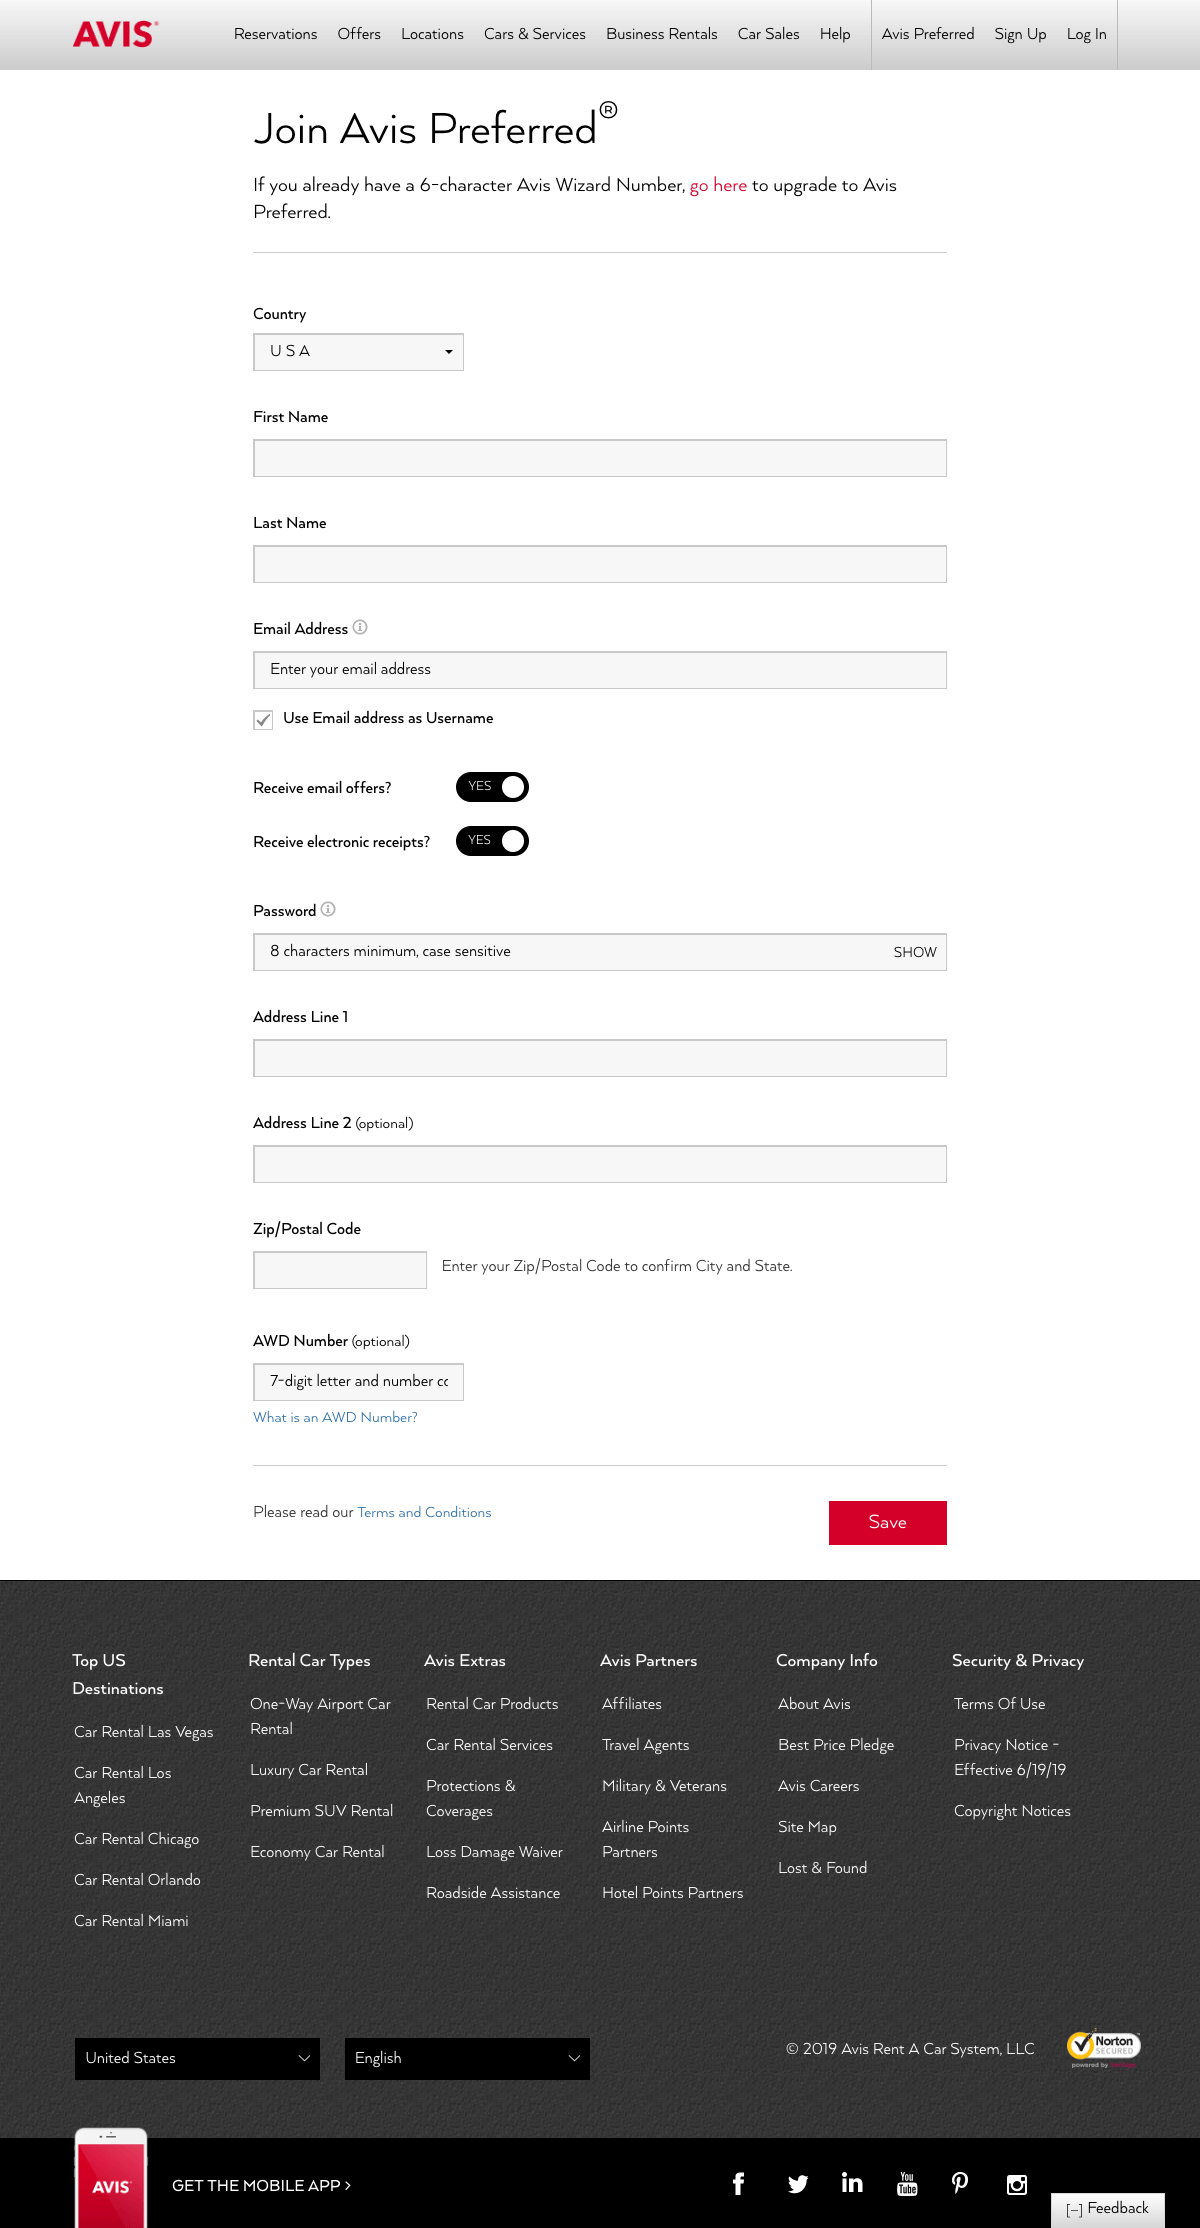 Sign up page - avis